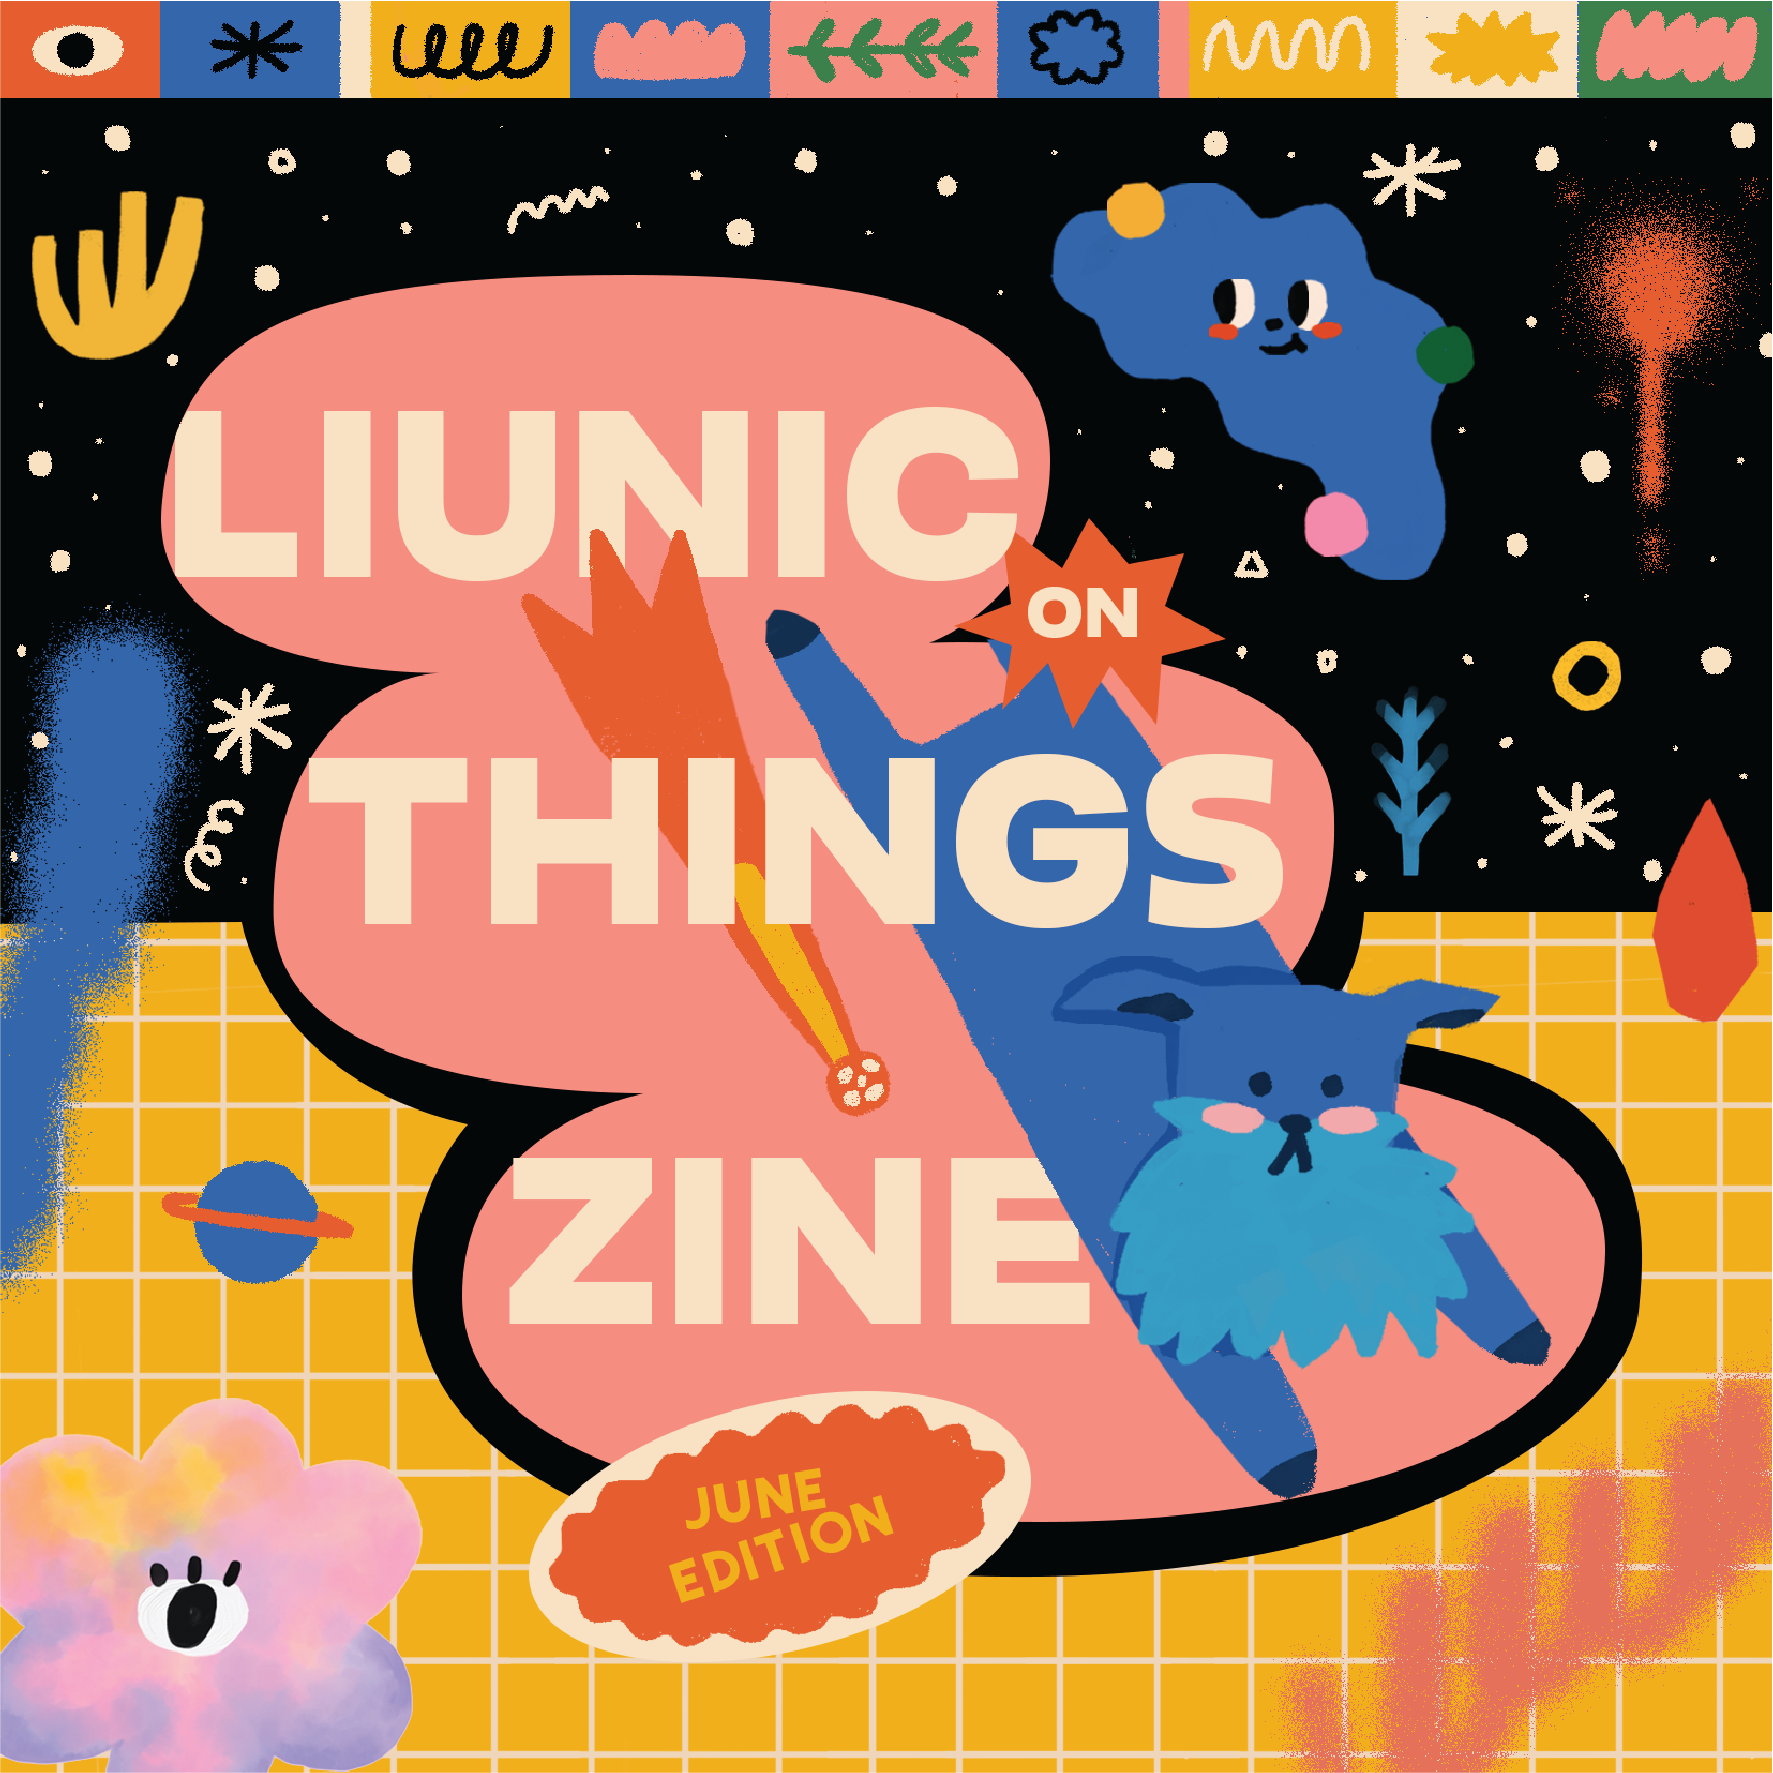 Liunic on Things June Zine